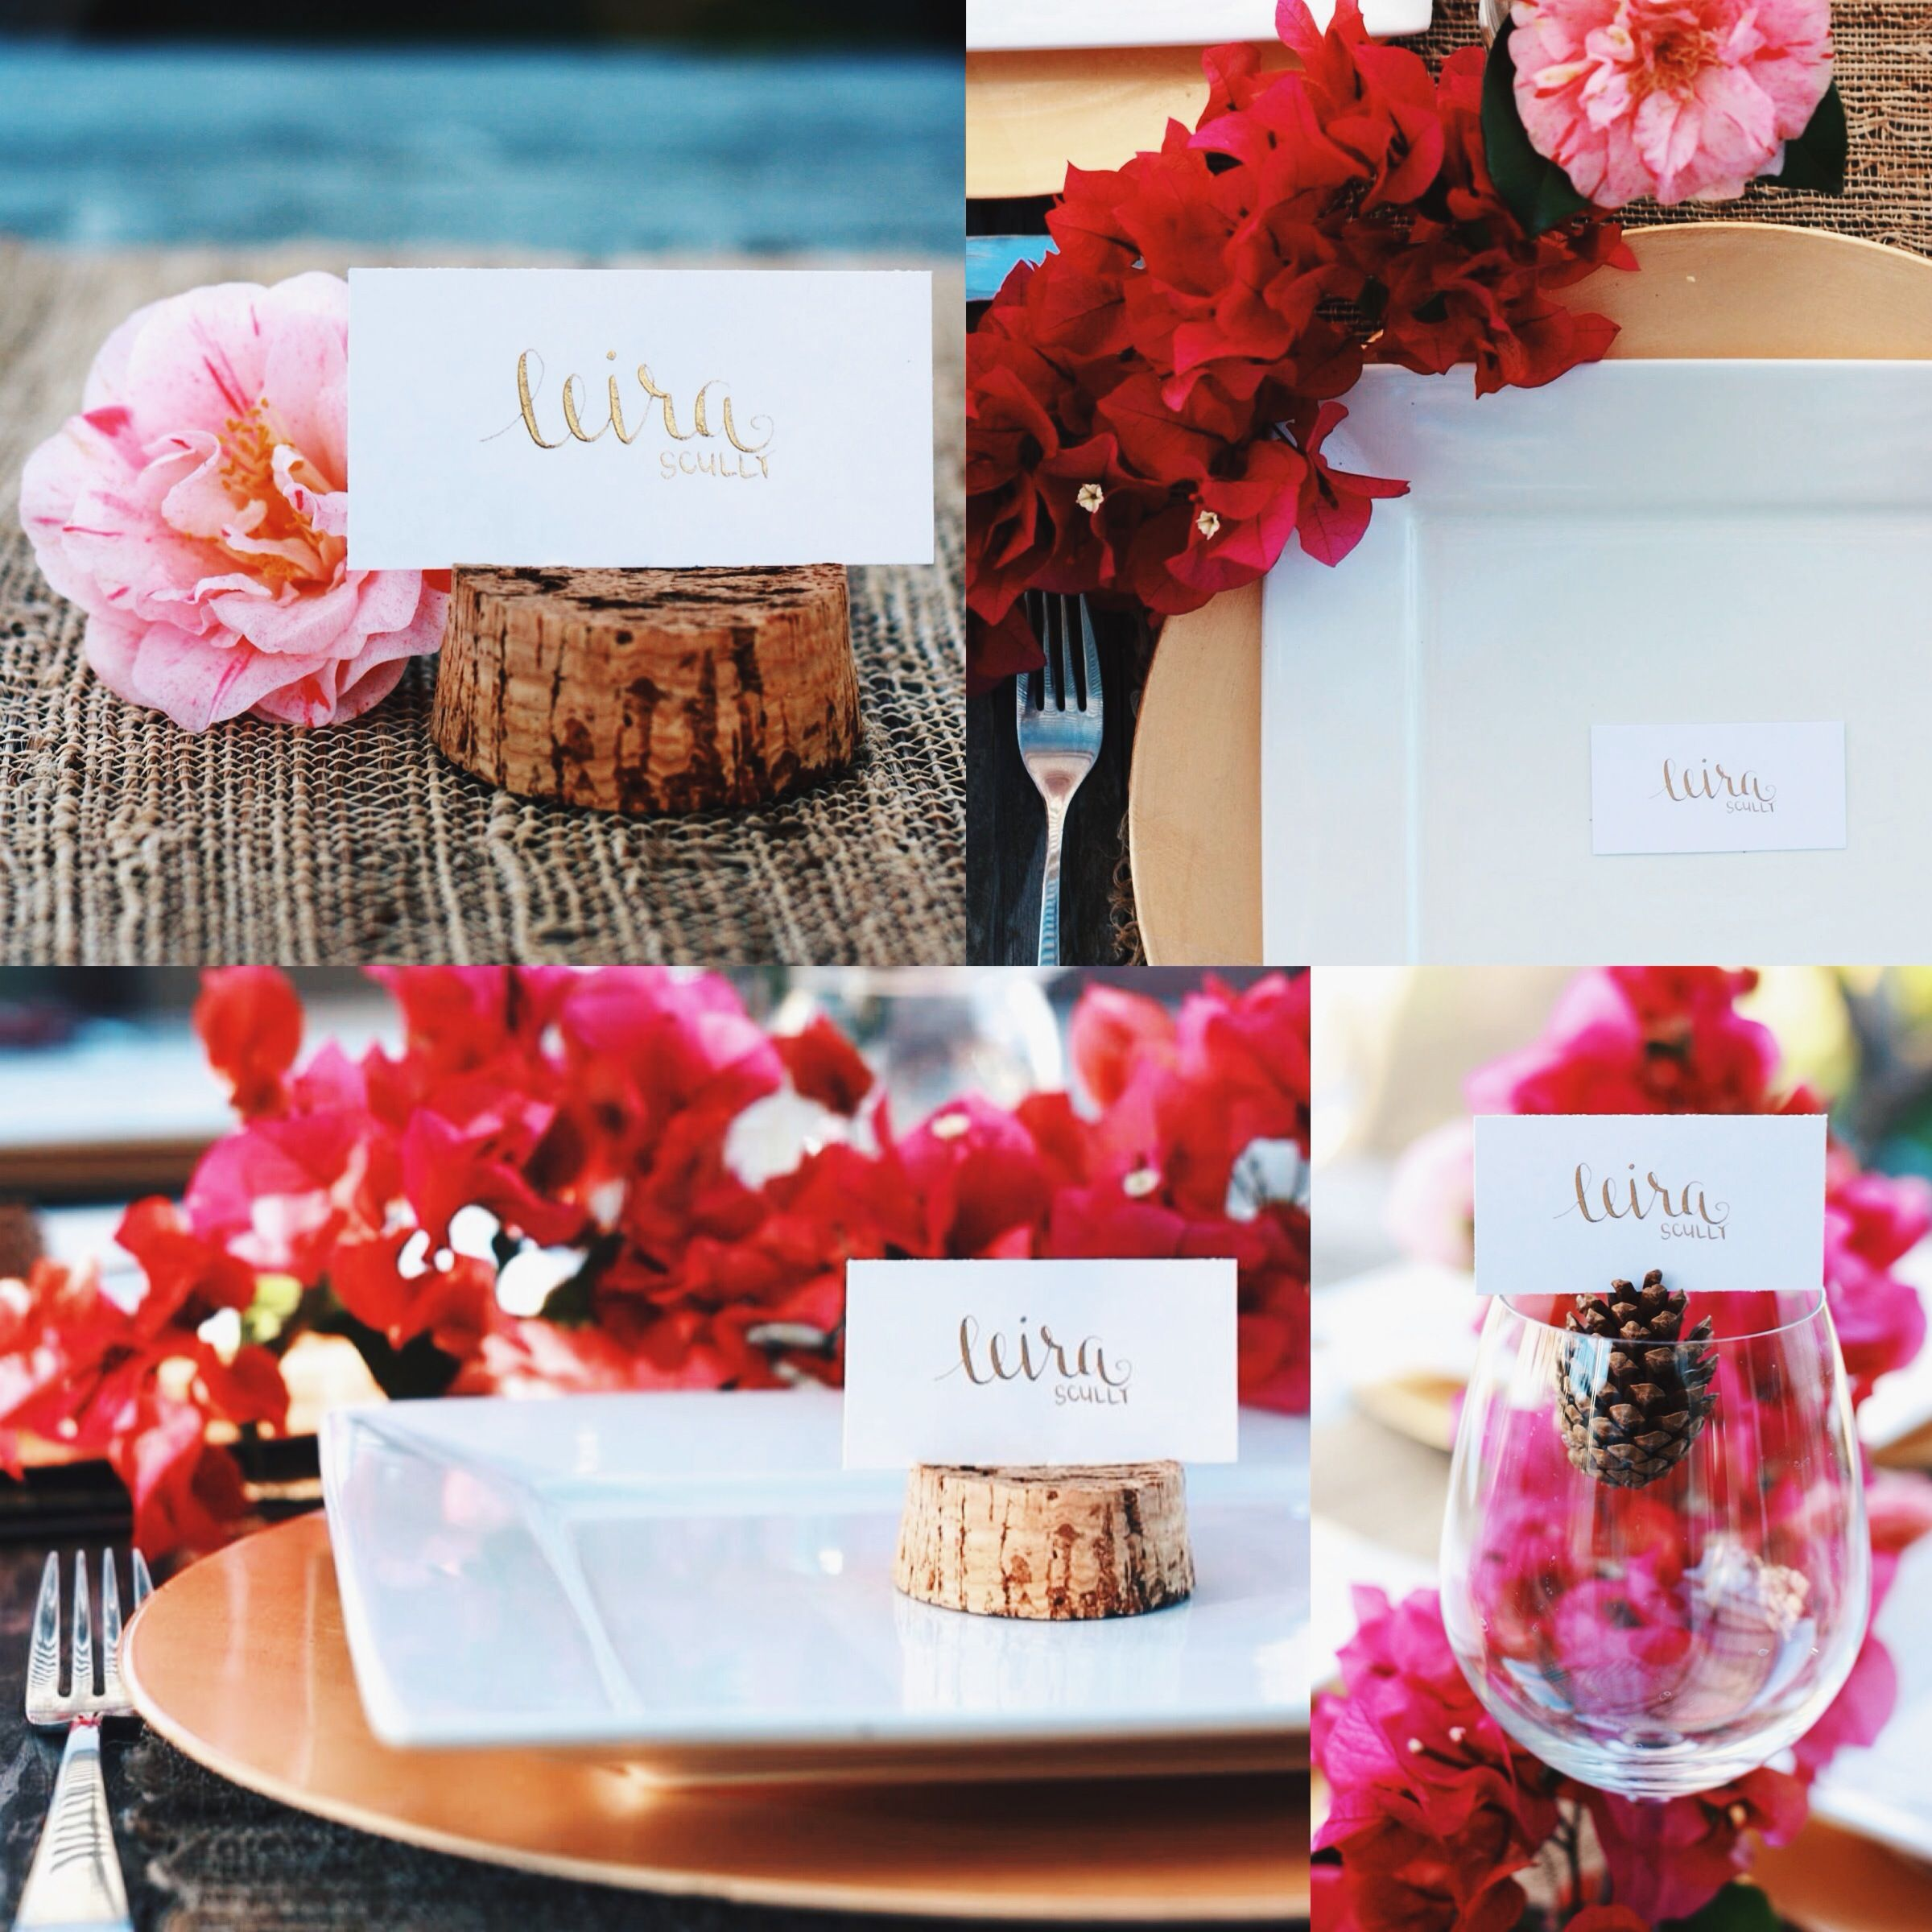 Dinner Party Name Ideas Part - 48: Wedding Place Cards - Escort Card - Gold / Black Calligraphy - Dinner Party  - Name